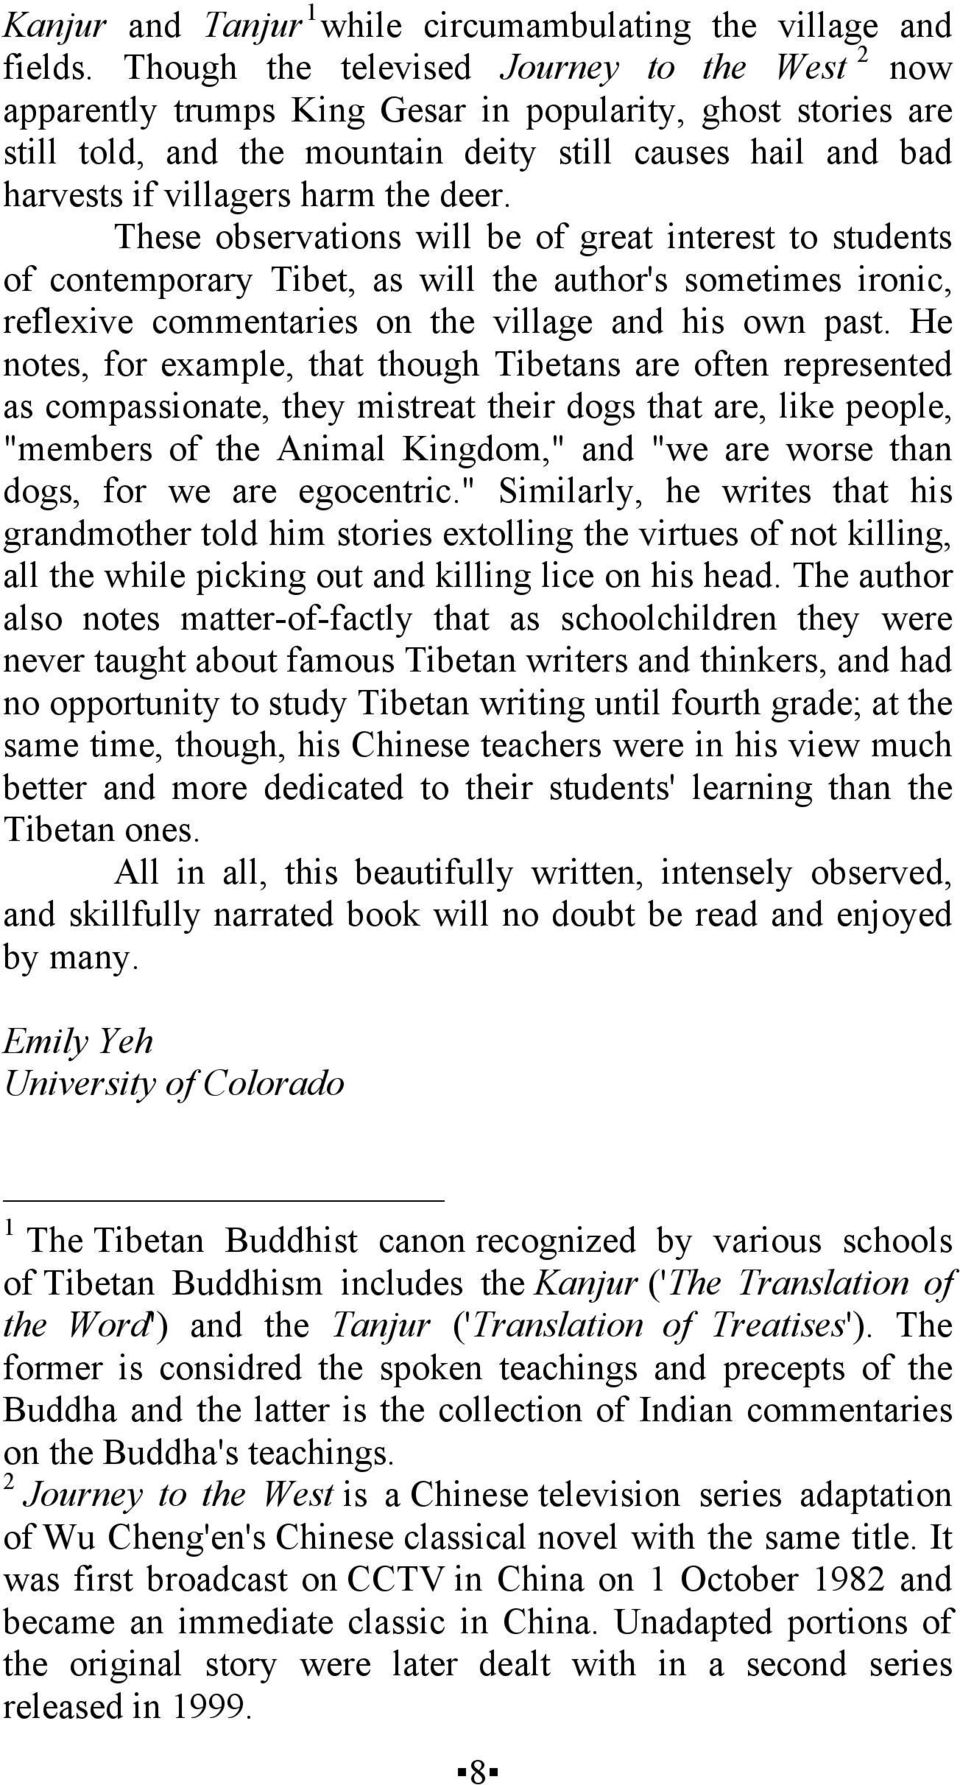 the deer. These observations will be of great interest to students of contemporary Tibet, as will the author's sometimes ironic, reflexive commentaries on the village and his own past.